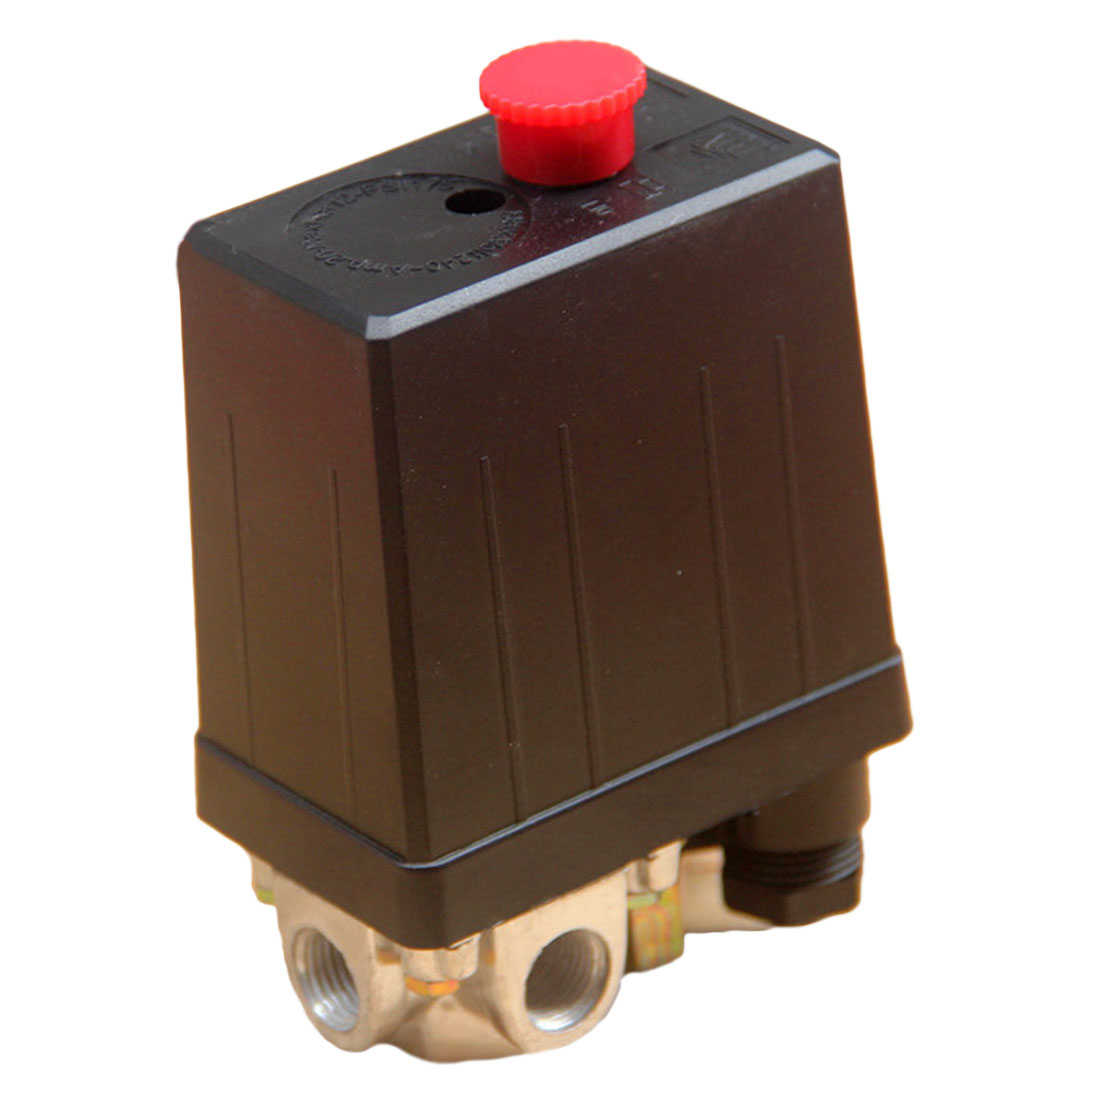 1pcs Heavy Duty Air Compressor Pressure Switch Control Valve 90 PSI -120 PSI Air Compressor Switch Control 2017 new heavy duty 240v 16a auto control auto load unload air compressor pressure switch control valve 90 psi 120